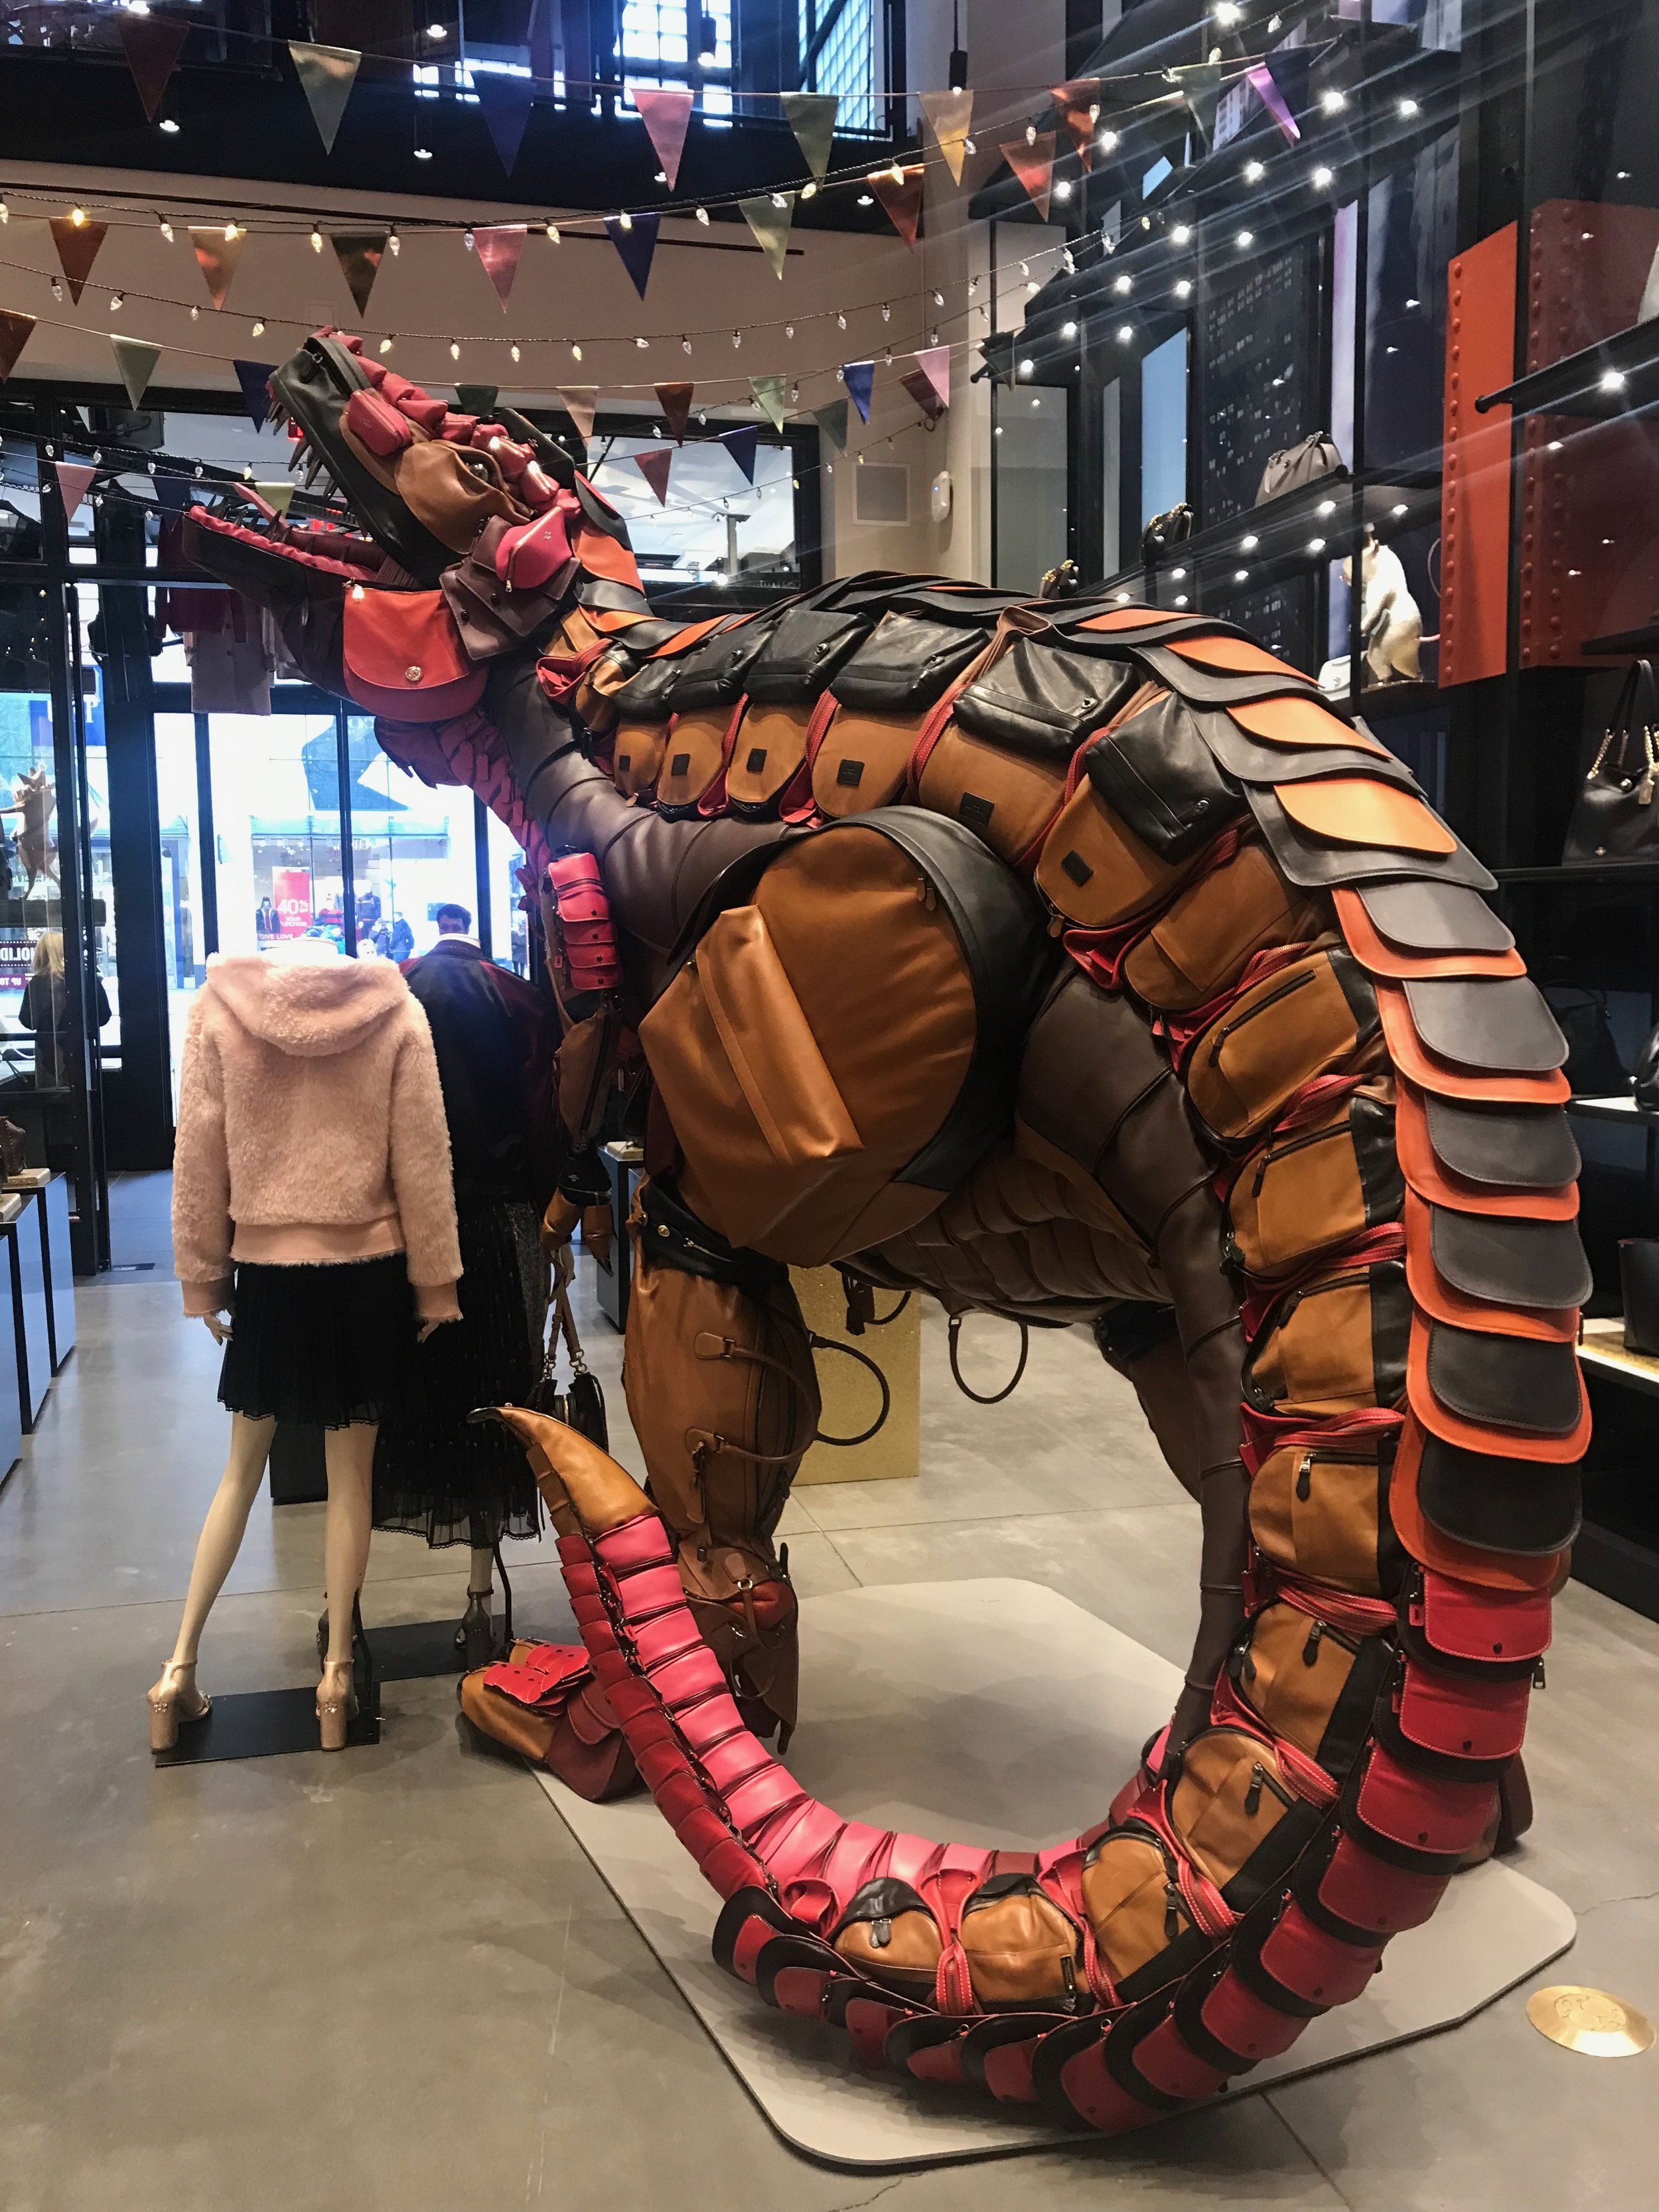 Made from 400 Coach bags, Rexy took 3 months to build - woven from a steel armature, fiberglass internal structure and stitched bag components.